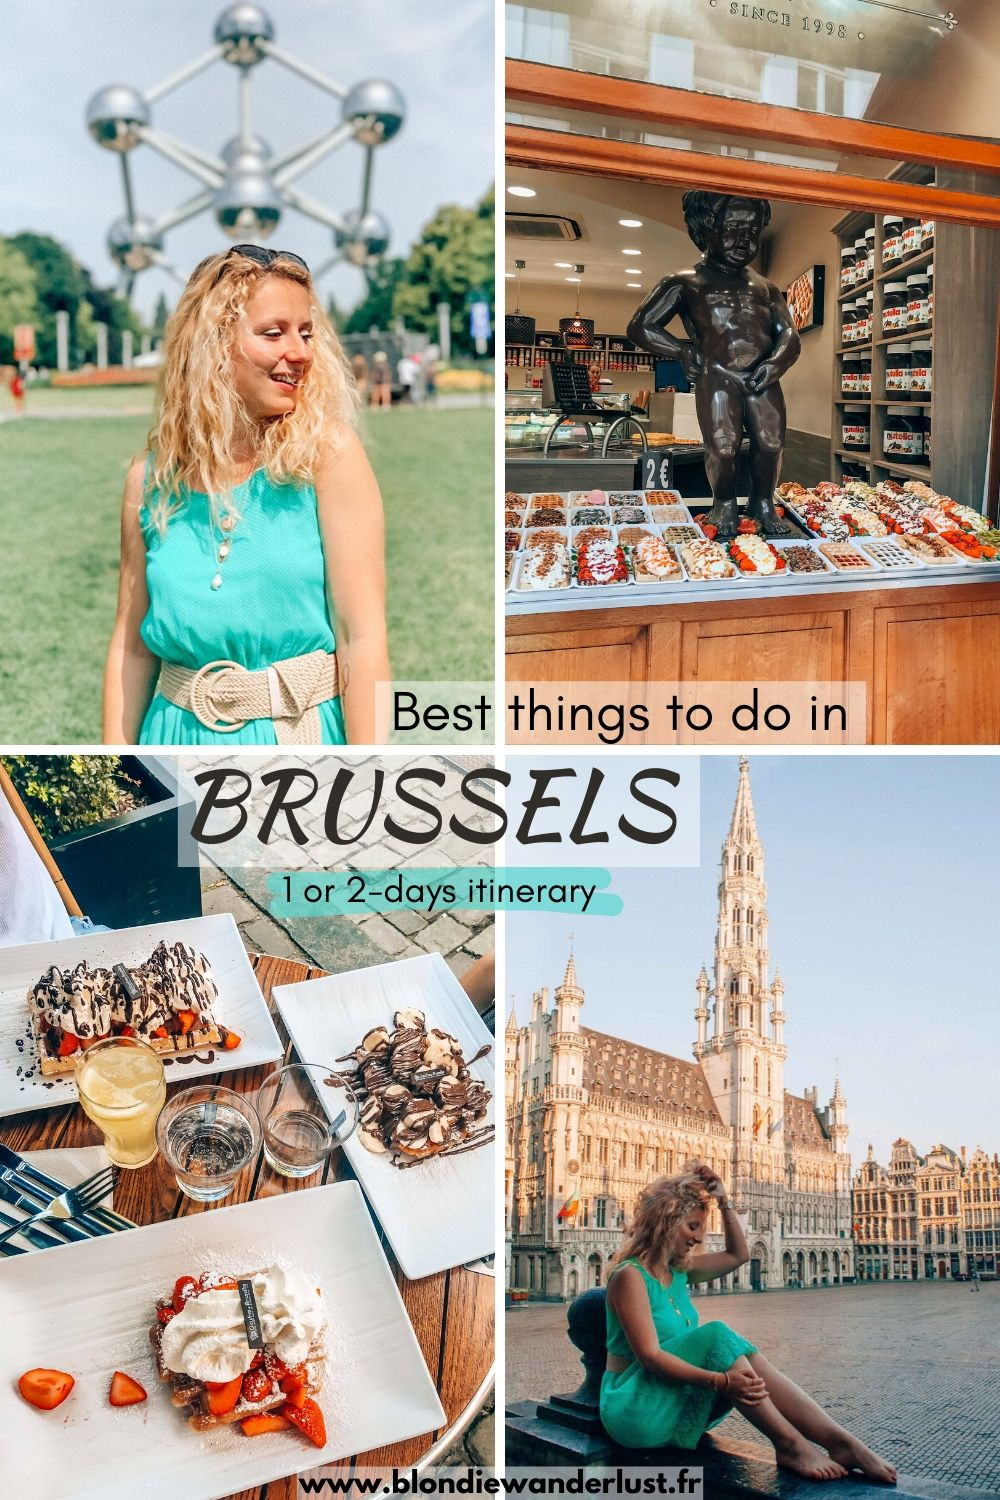 Best things to do in Brussels for 24h or 48h